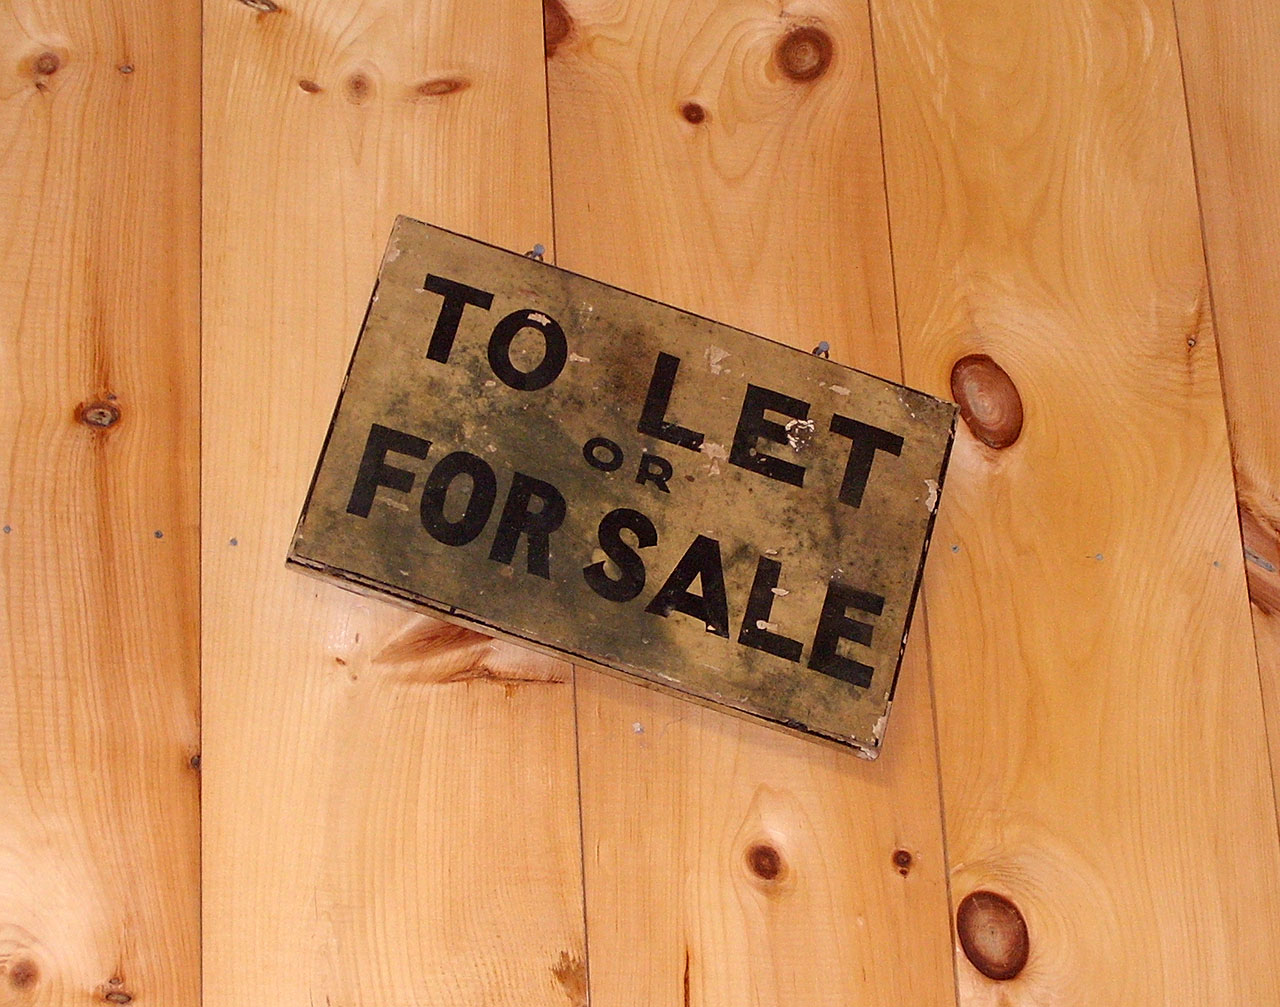 for sale to let sign